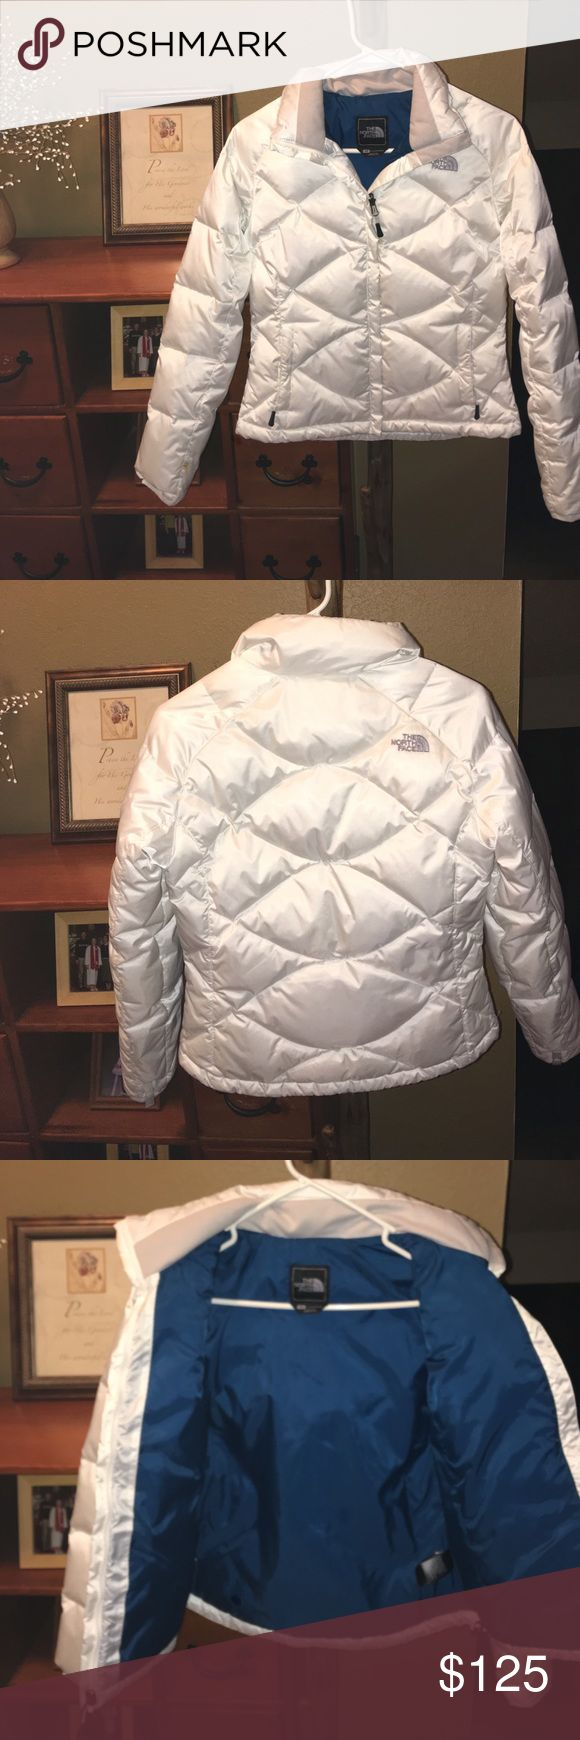 ☁️BRAND NEW Puffy White North Face Winter Jacket☁️ Brand new authentic north face winter jacket. Bought online and discovered it was too short on me :( The North Face Jackets & Coats Puffers